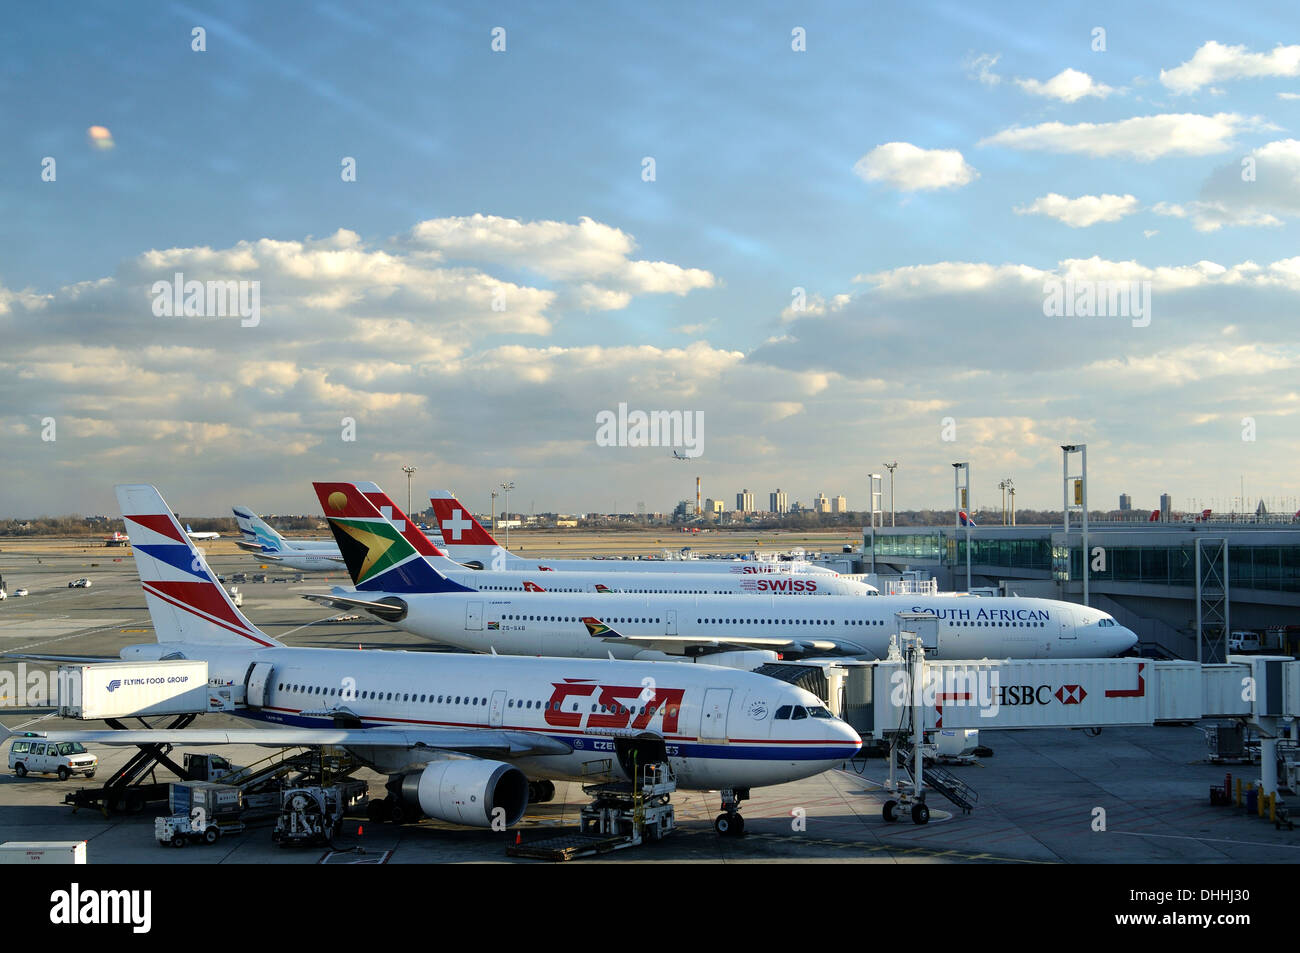 Airplanes at Terminal 4, John F Kennedy Airport, New York City, New York, United States - Stock Image